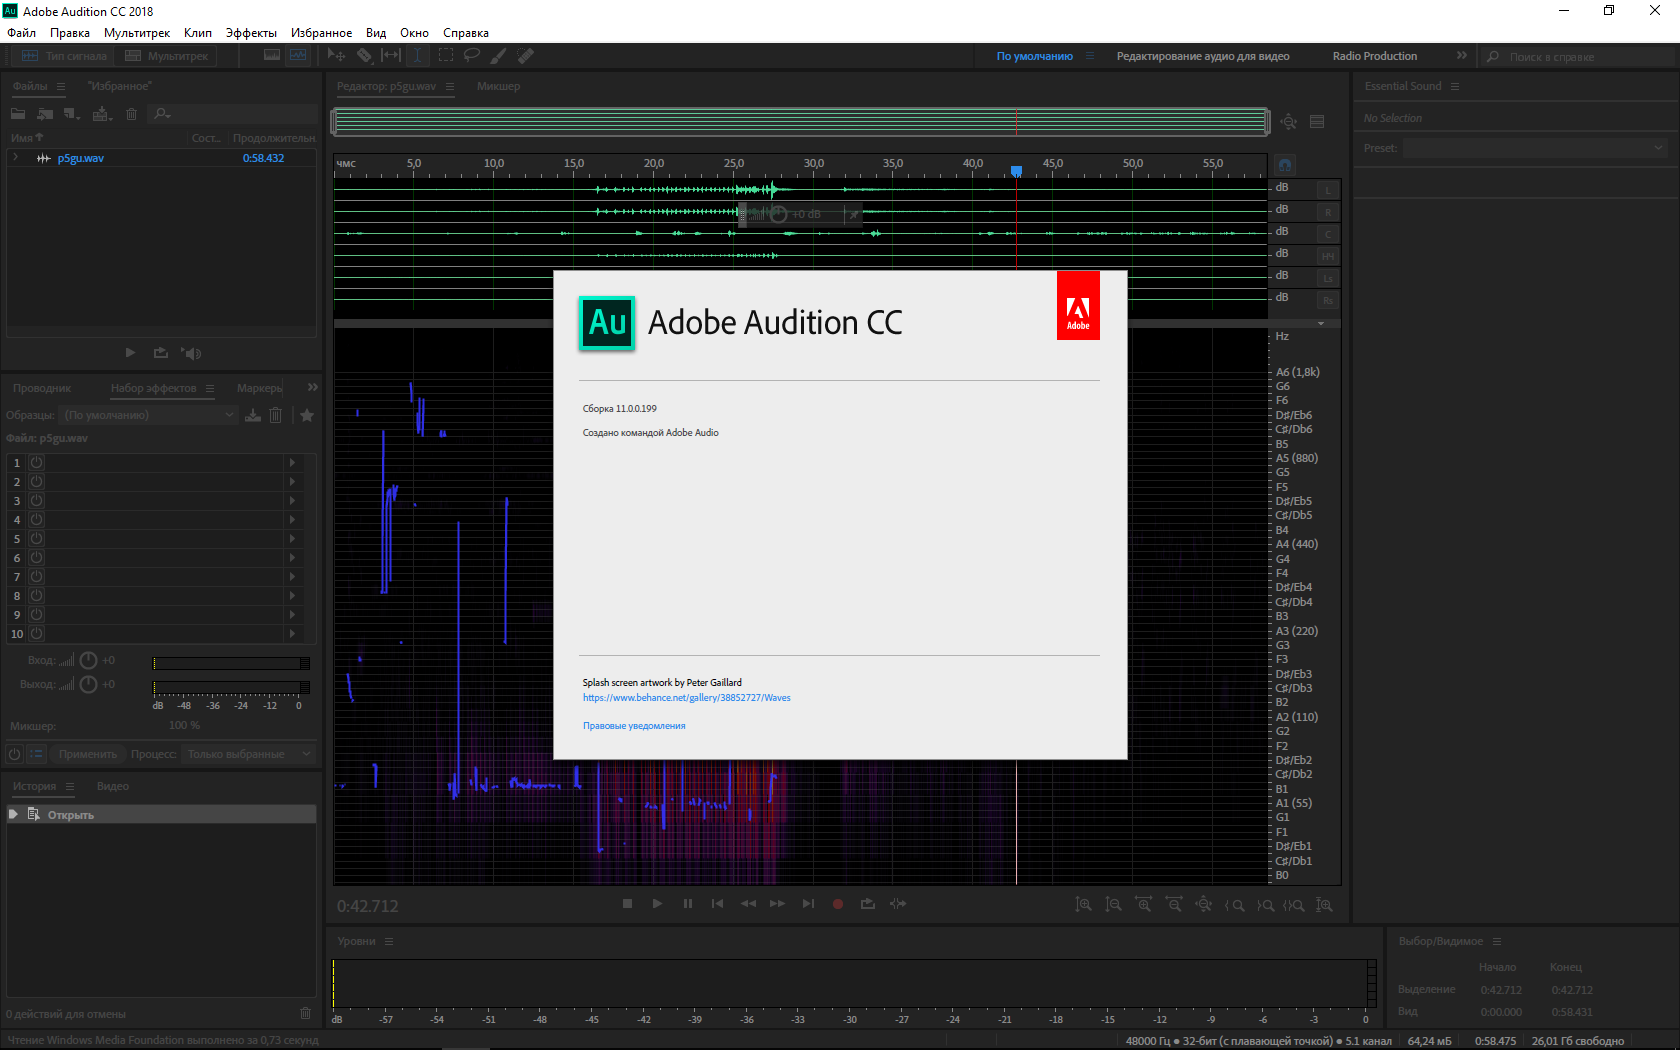 Adobe Audition CC 2018 [11.1.0.184] [x64] (2018/РС/Русский), RePack by KpoJIuK